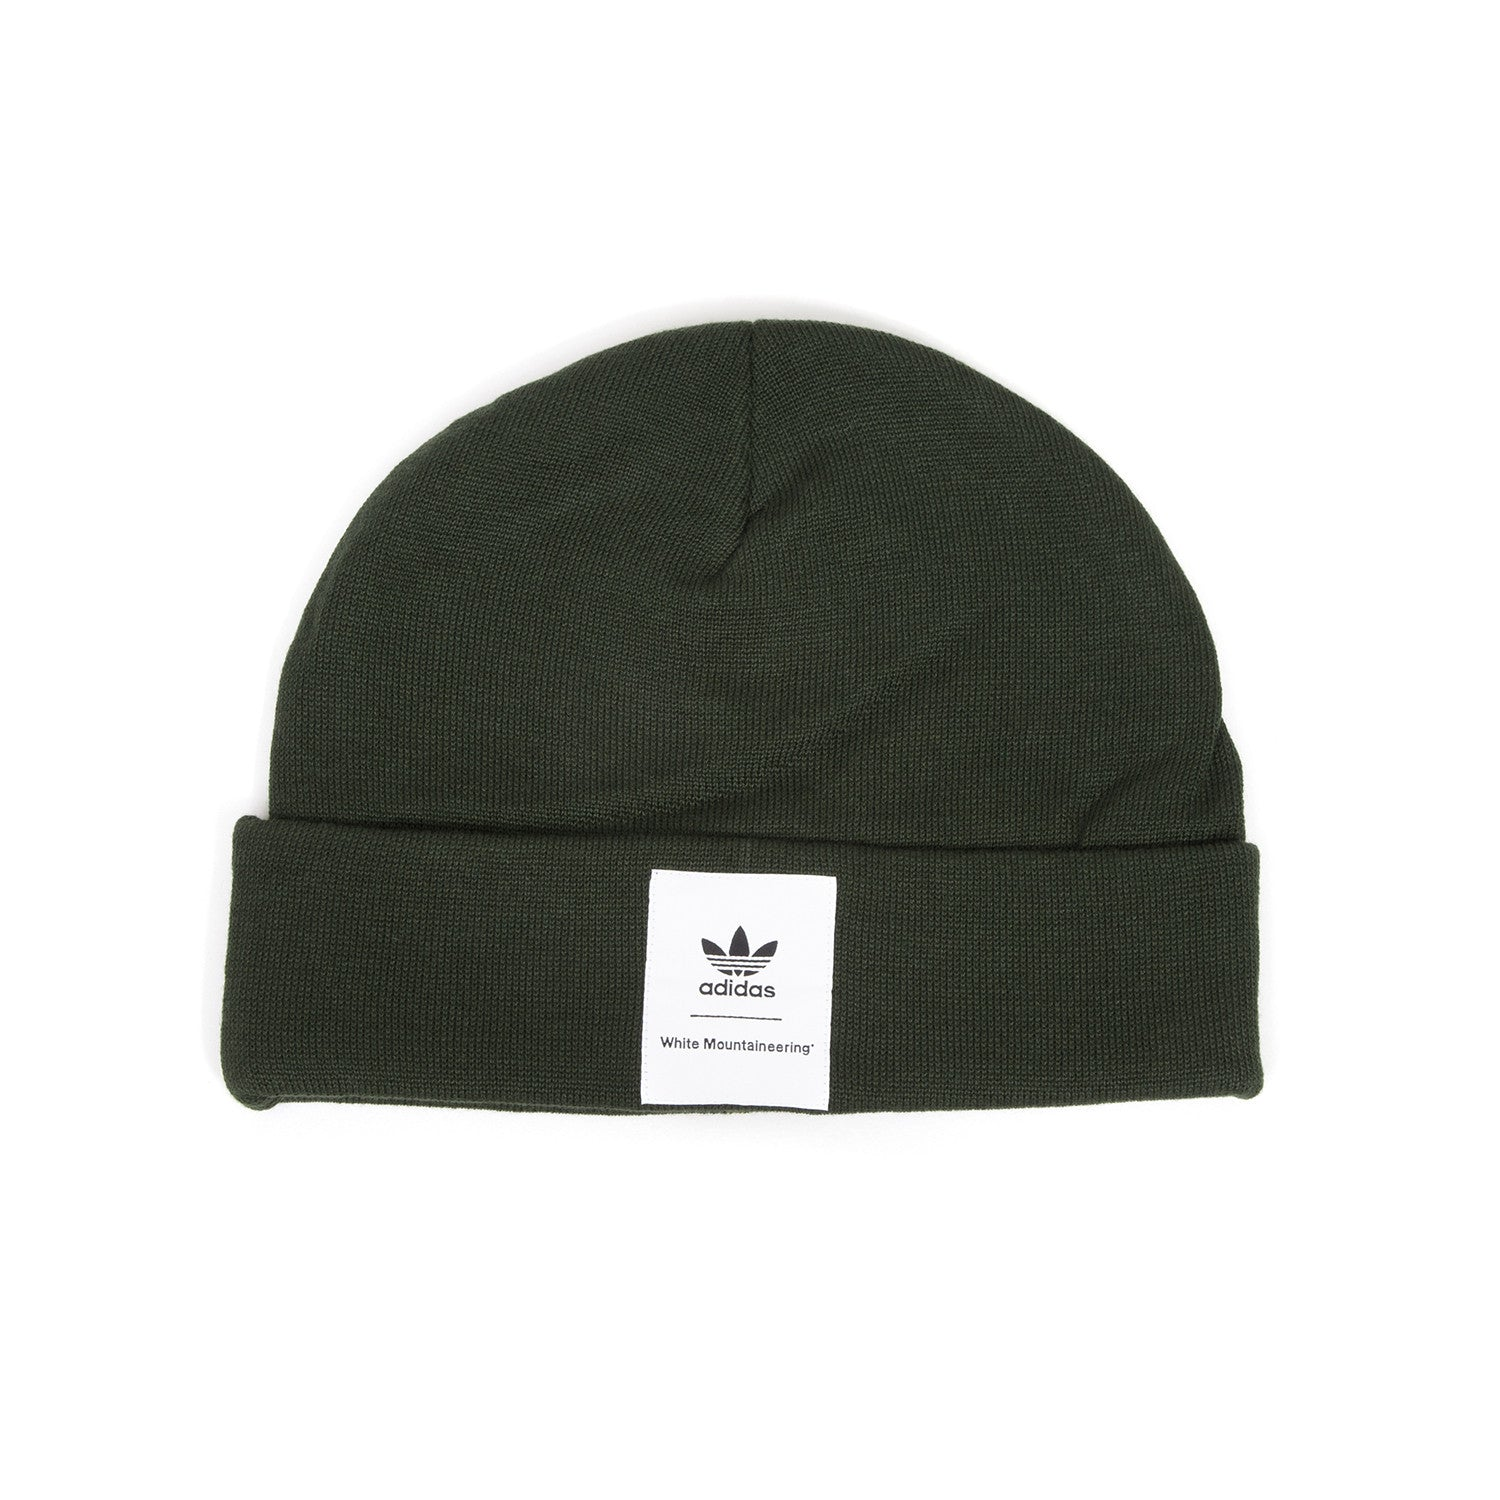 adidas Originals x White Mountaineering Beanie Night Cargo – Concrete 455145886423